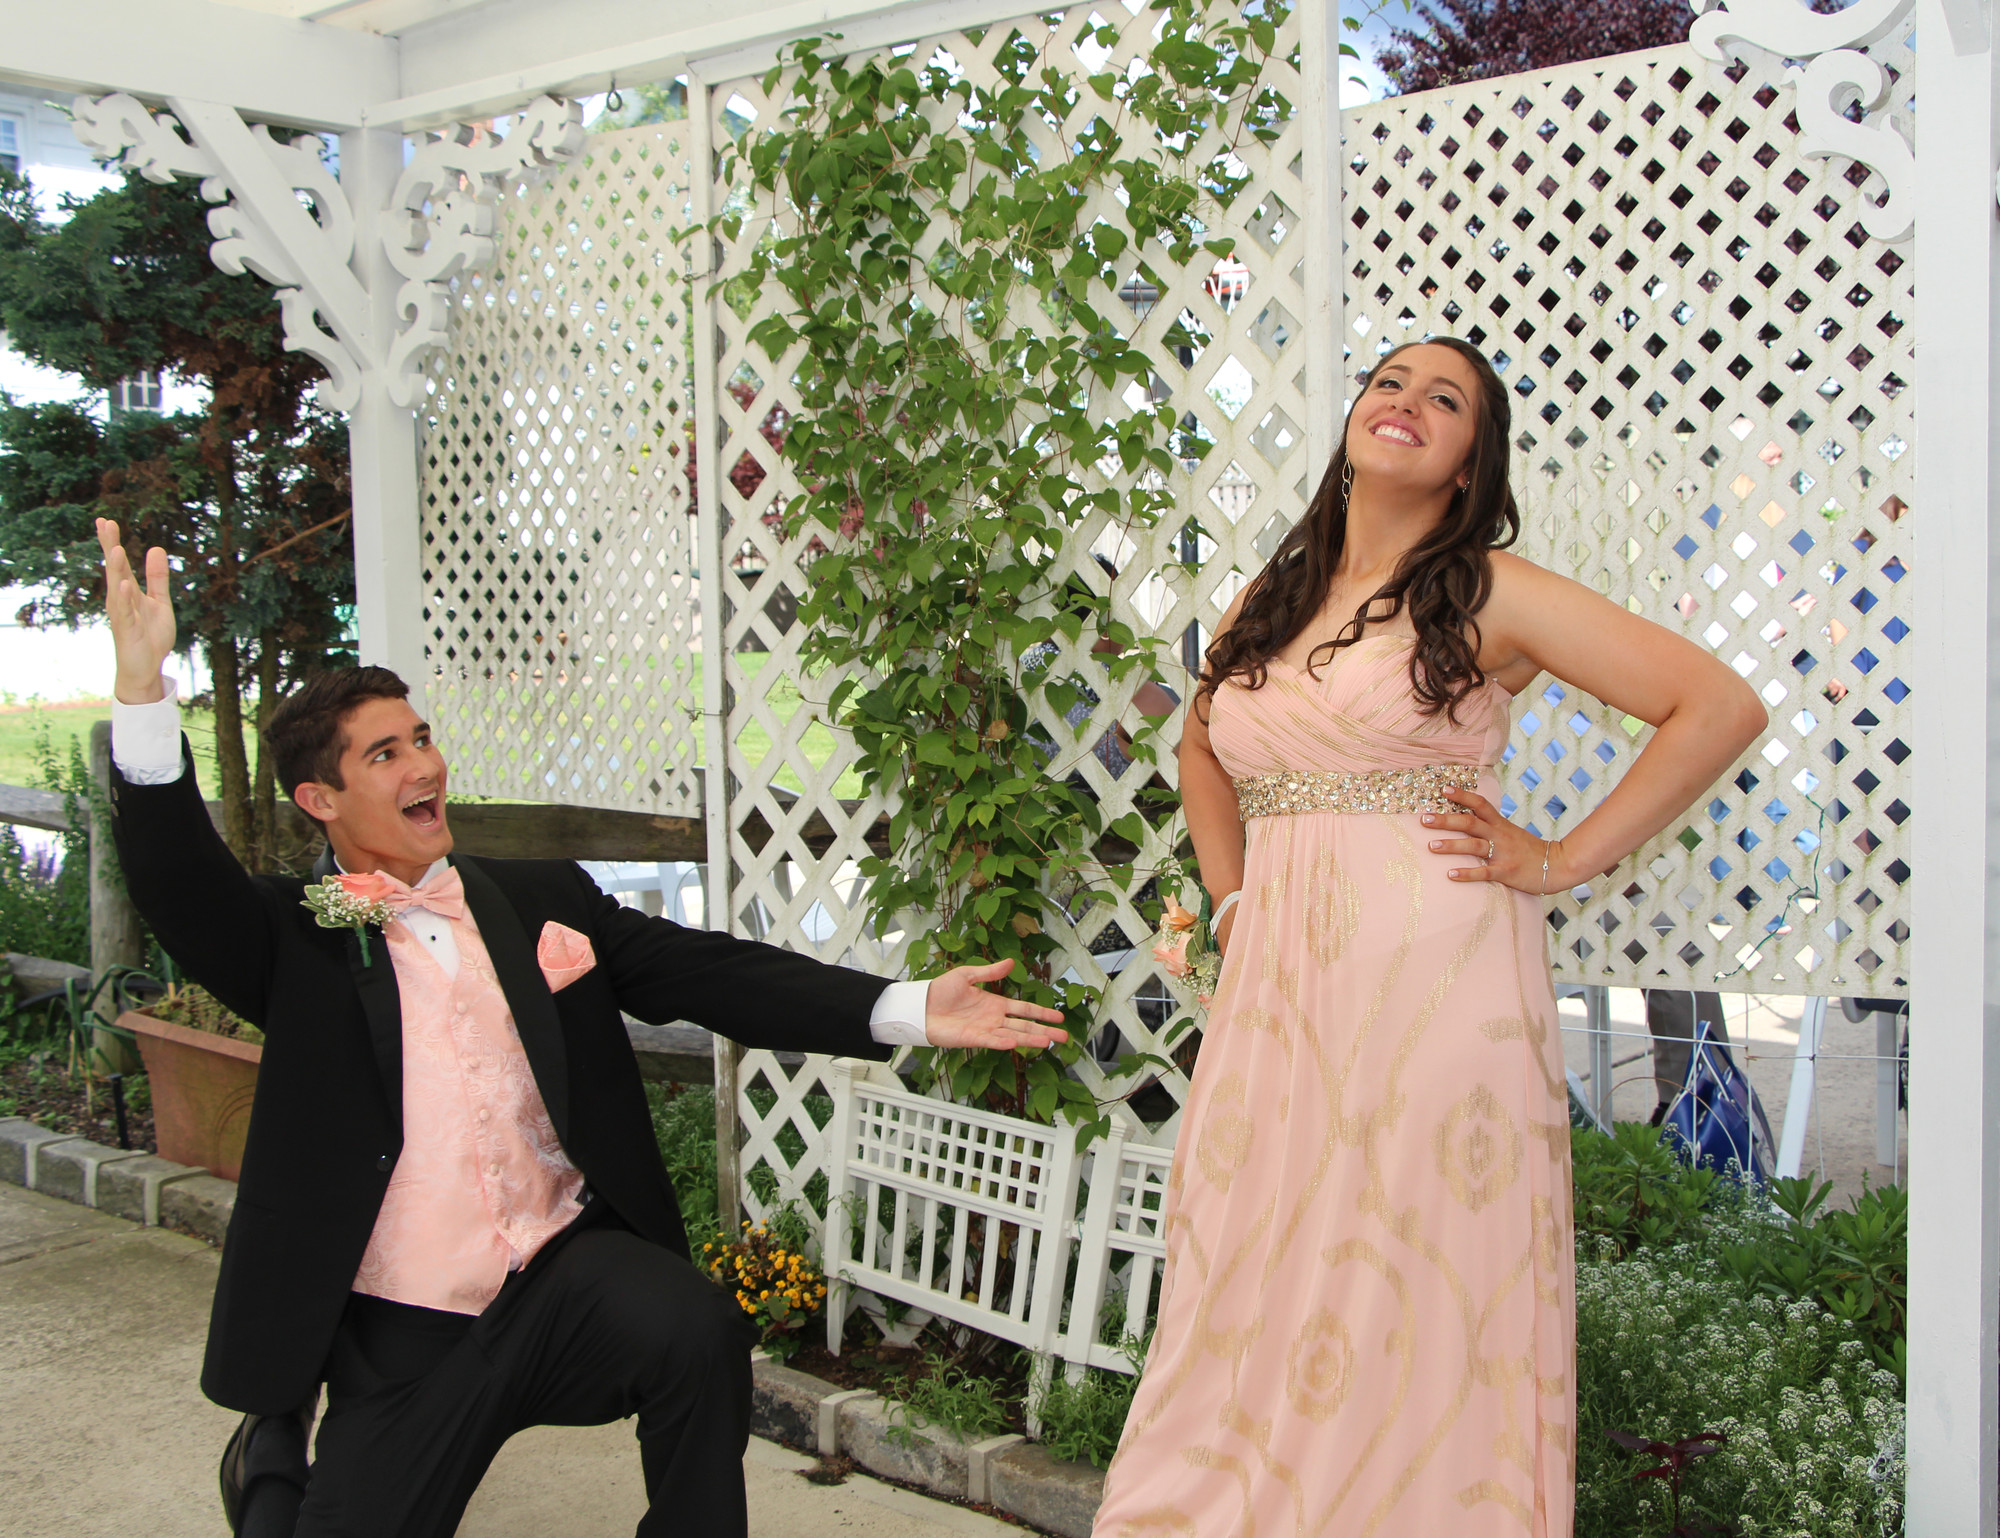 Joseph Orselli and Hannah Marrero were ready for their prom — a night of high drama.